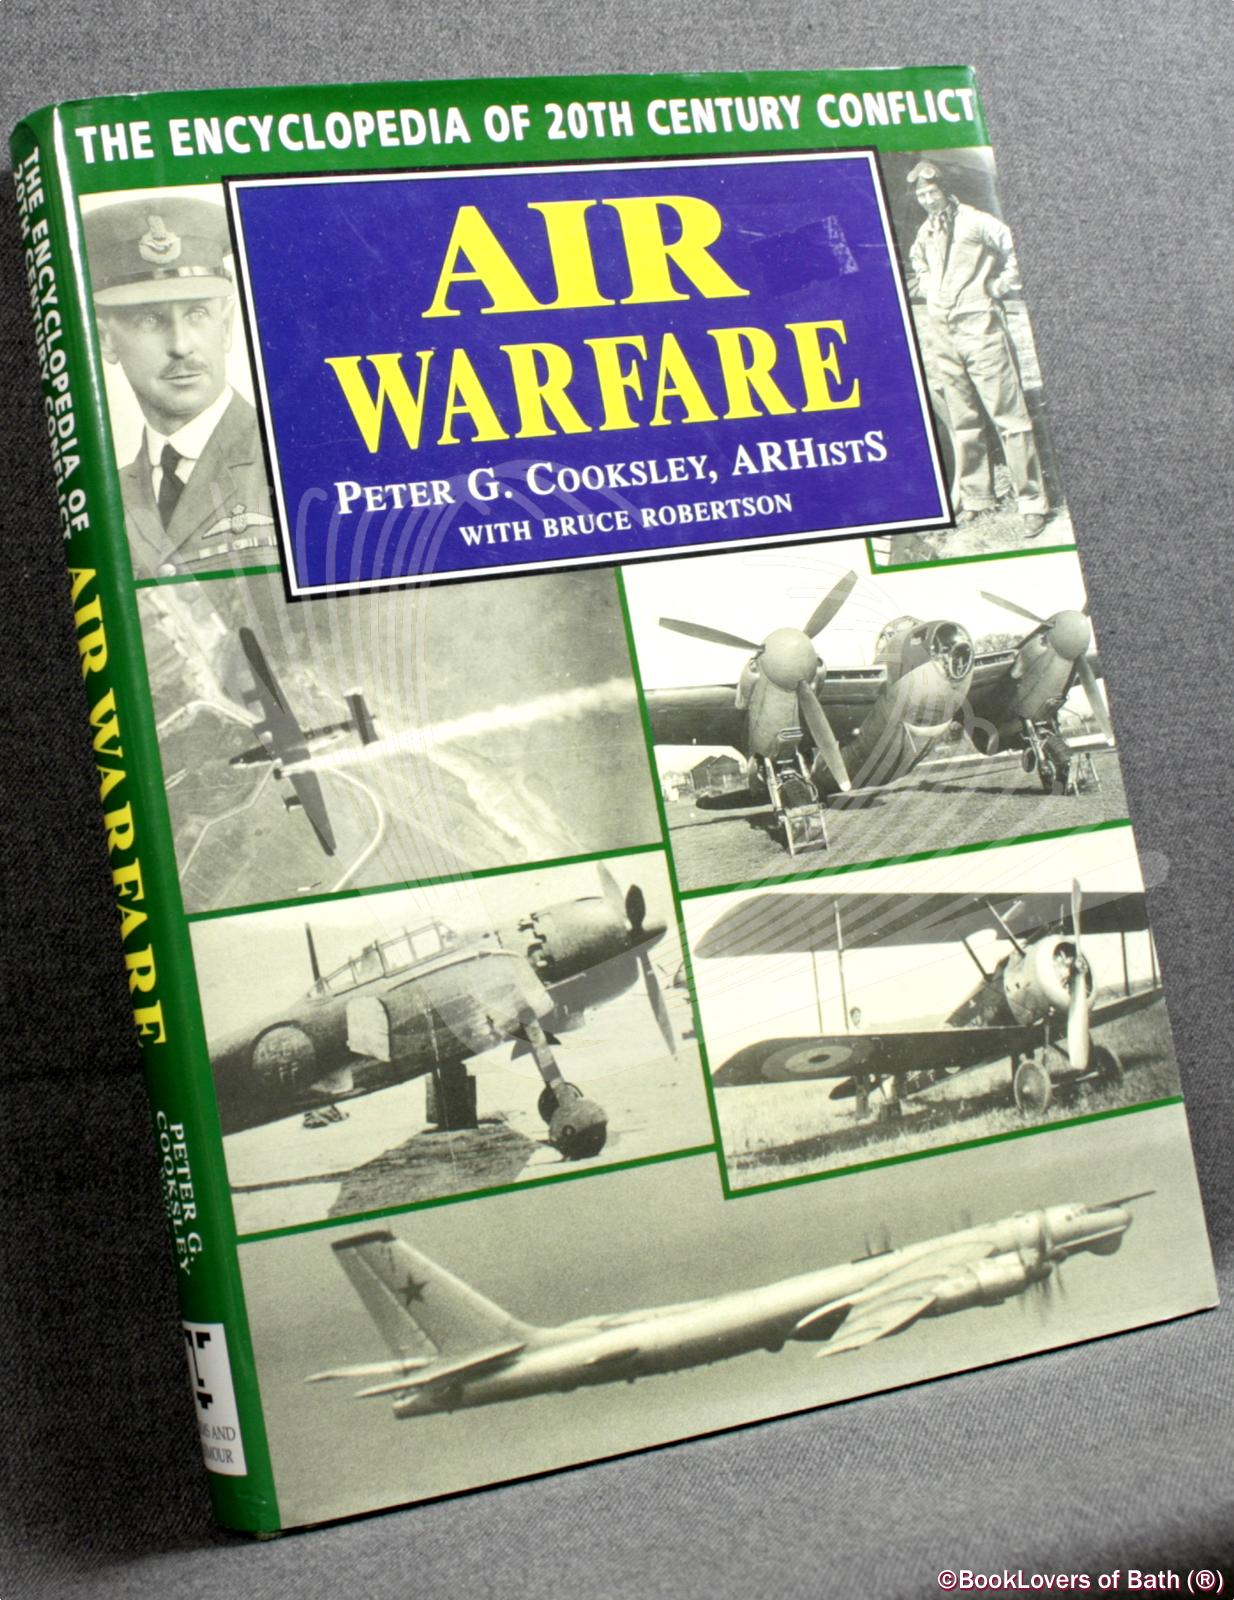 Air Warfare - Peter G. Cooksley with Bruce Robertson